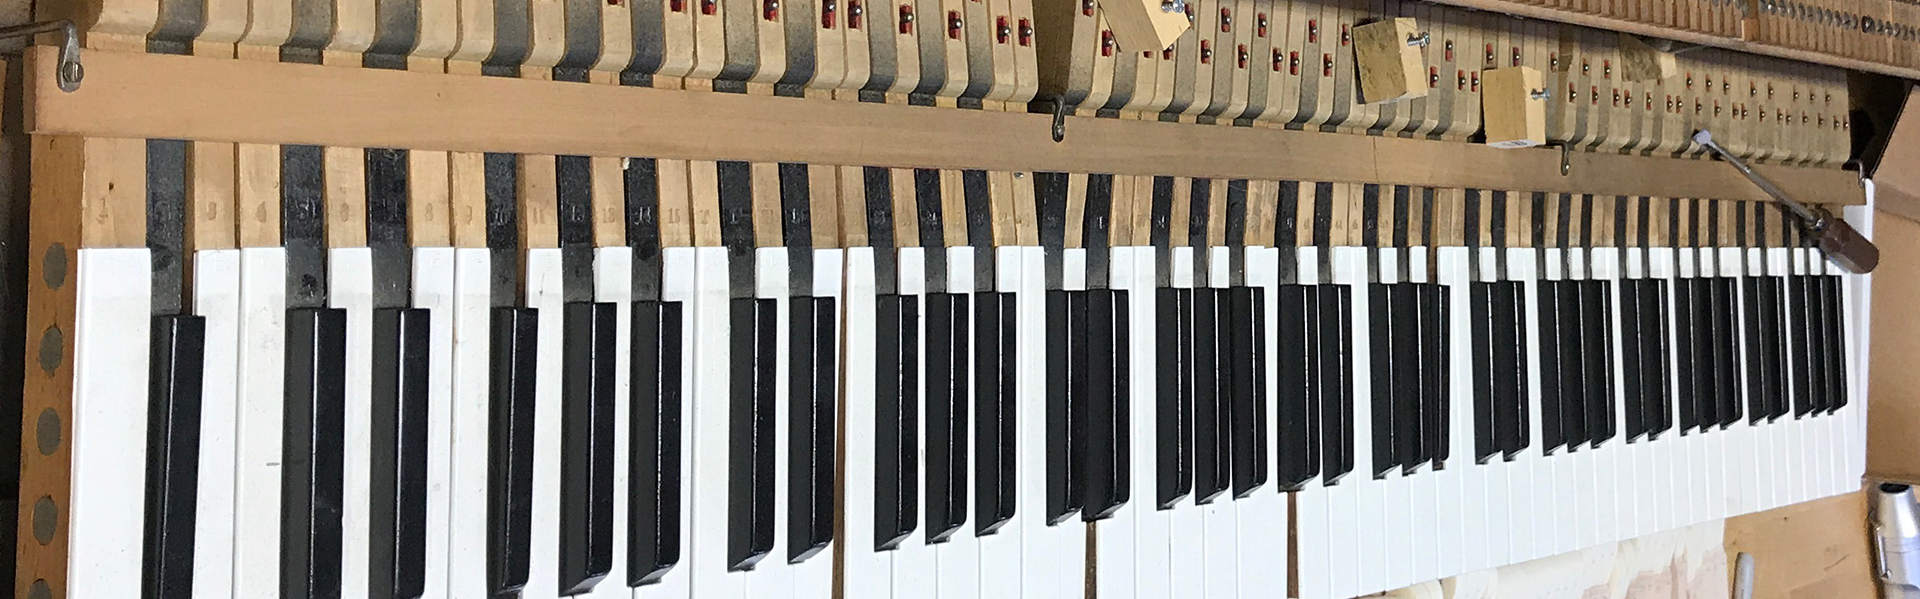 portland-piano-repair-and-restoration-from-michelles-piano-in-portland-oregon-piano-restoratiom-pic1